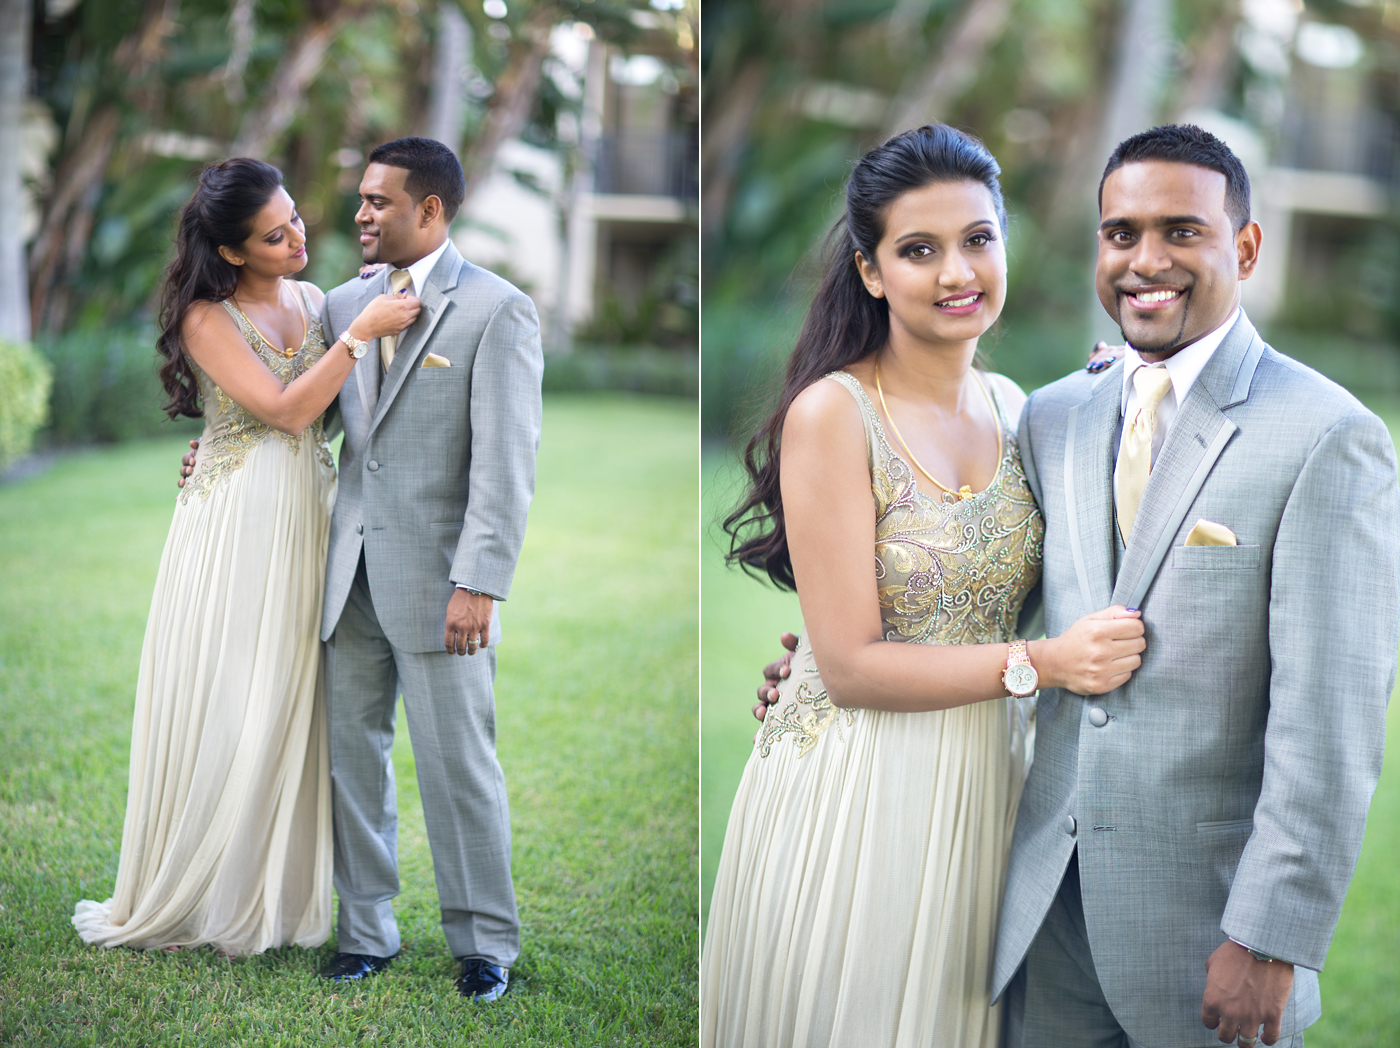 Nush +  Guya | Miami Wedding Reception | Hyatt Regency Pier 66, Miami Wedding Photographers | Häring Photography, Indian Wedding Photographer in Florida, Best Muslim, Hindu - South East Asian Wedding Photographers